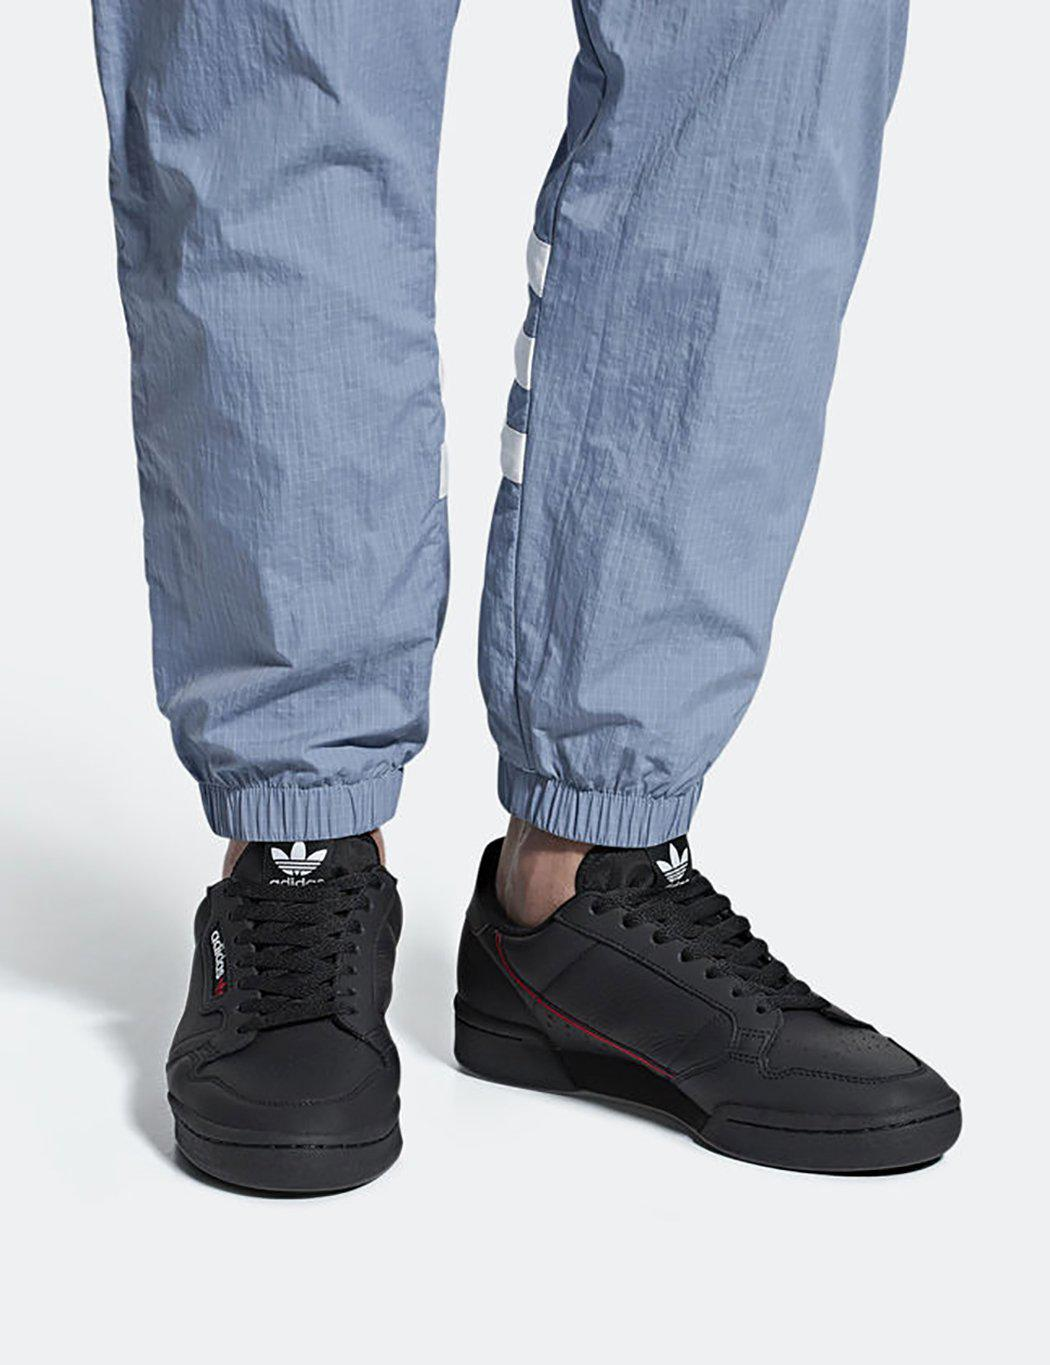 huge discount 99413 93c69 Lyst - adidas Originals Adidas Continental 80 (b41672) in Black for Men -  Save 34%